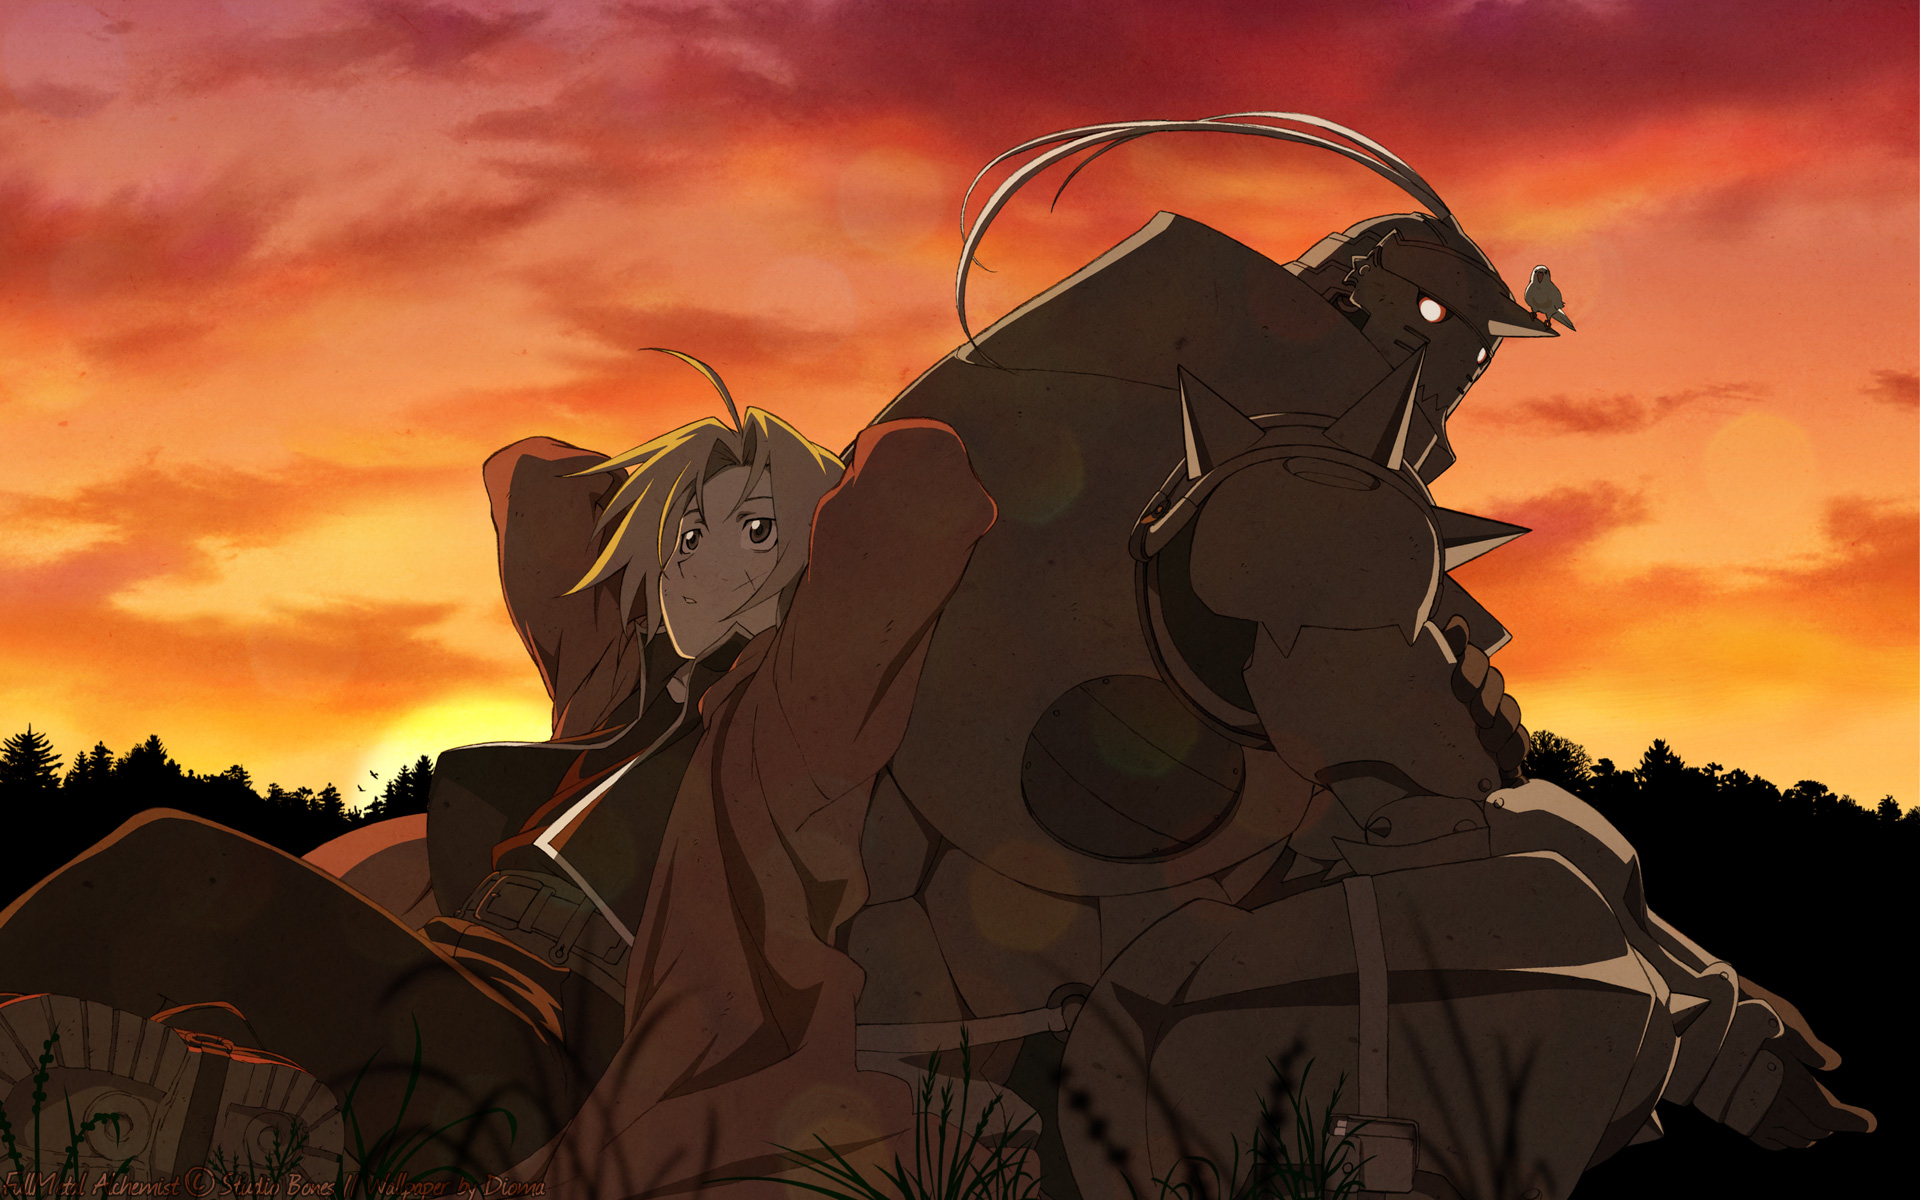 Fma Wallpaper Quotes Fullmetal Alchemist Hd Wallpaper Background Image